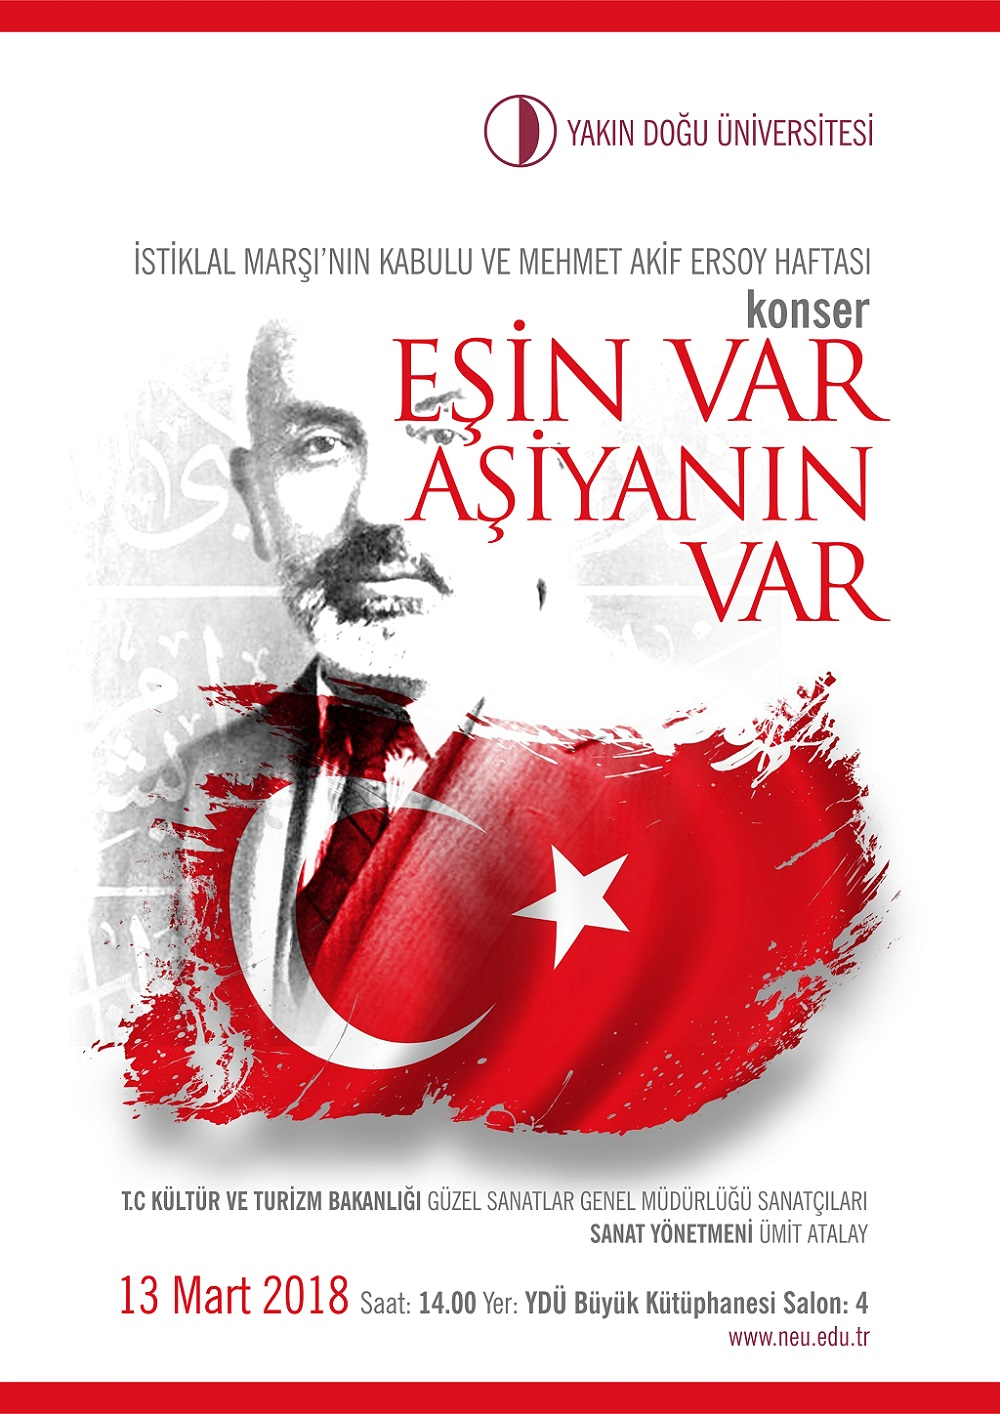 The Adoption of Turkish National Anthem, and Mehmet Akif Ersoy Week will be commemorated with various activities